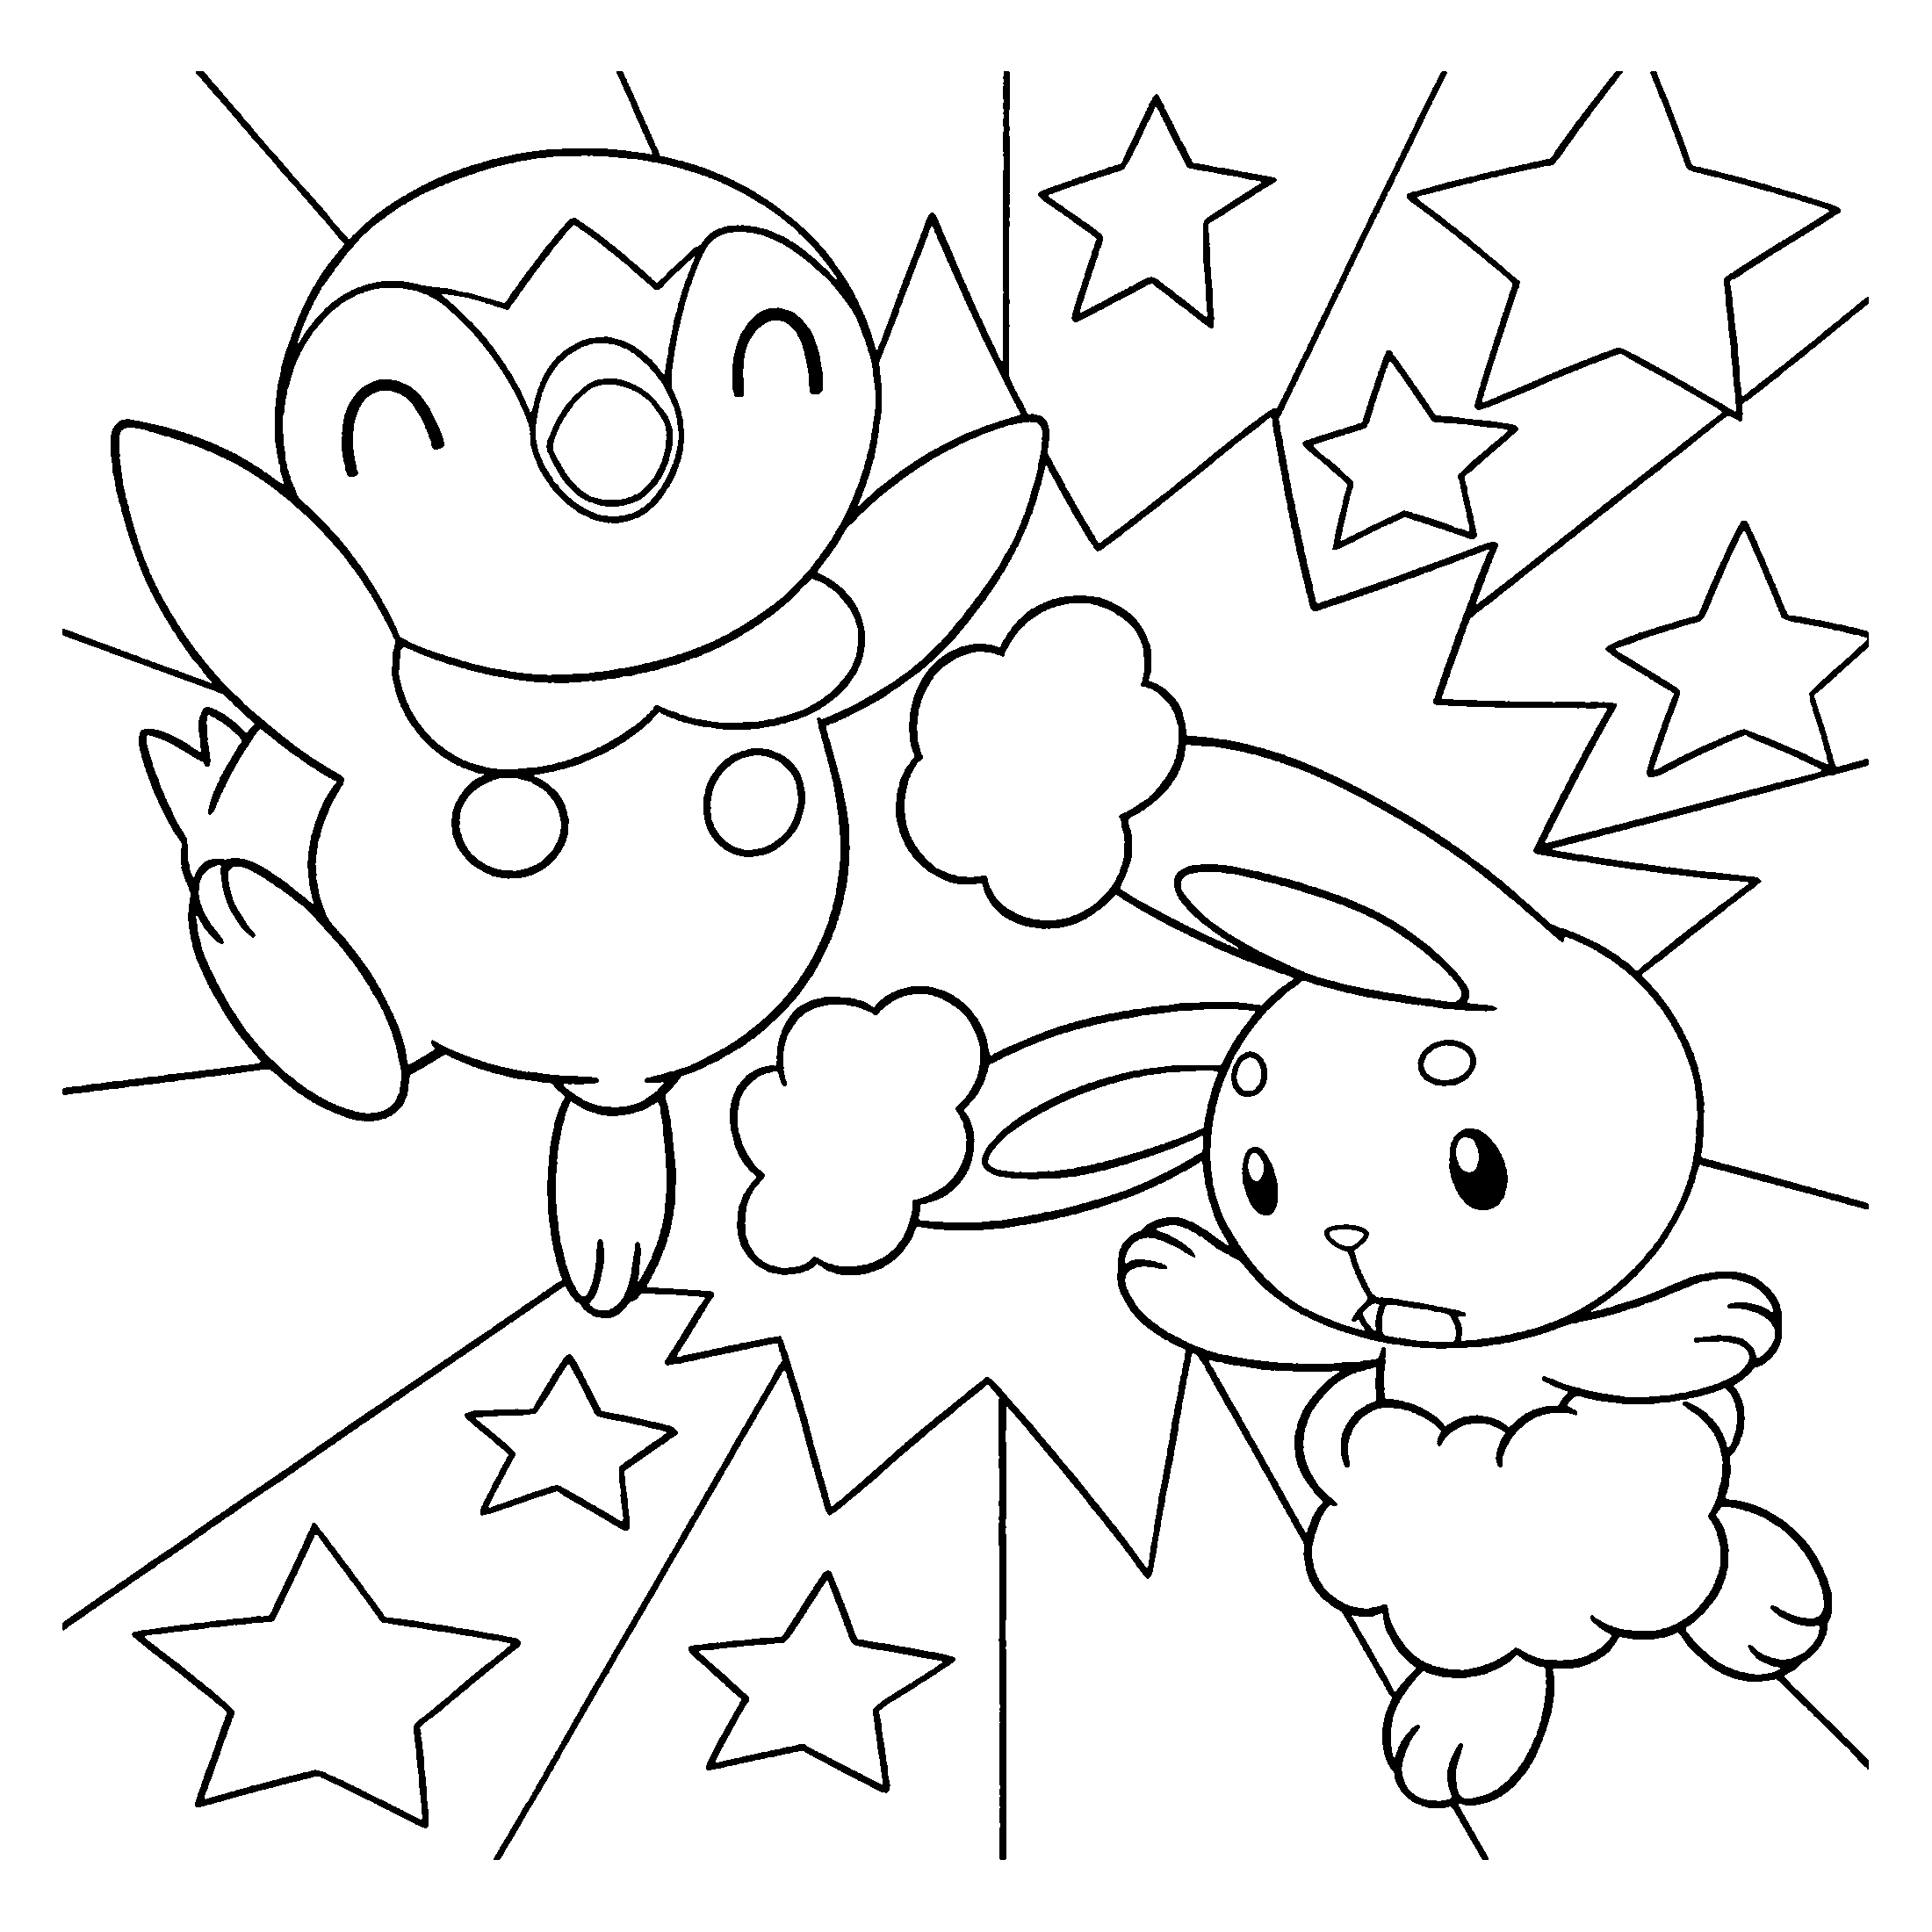 coloring page pokemon diamond pearl coloring pages 93. Black Bedroom Furniture Sets. Home Design Ideas